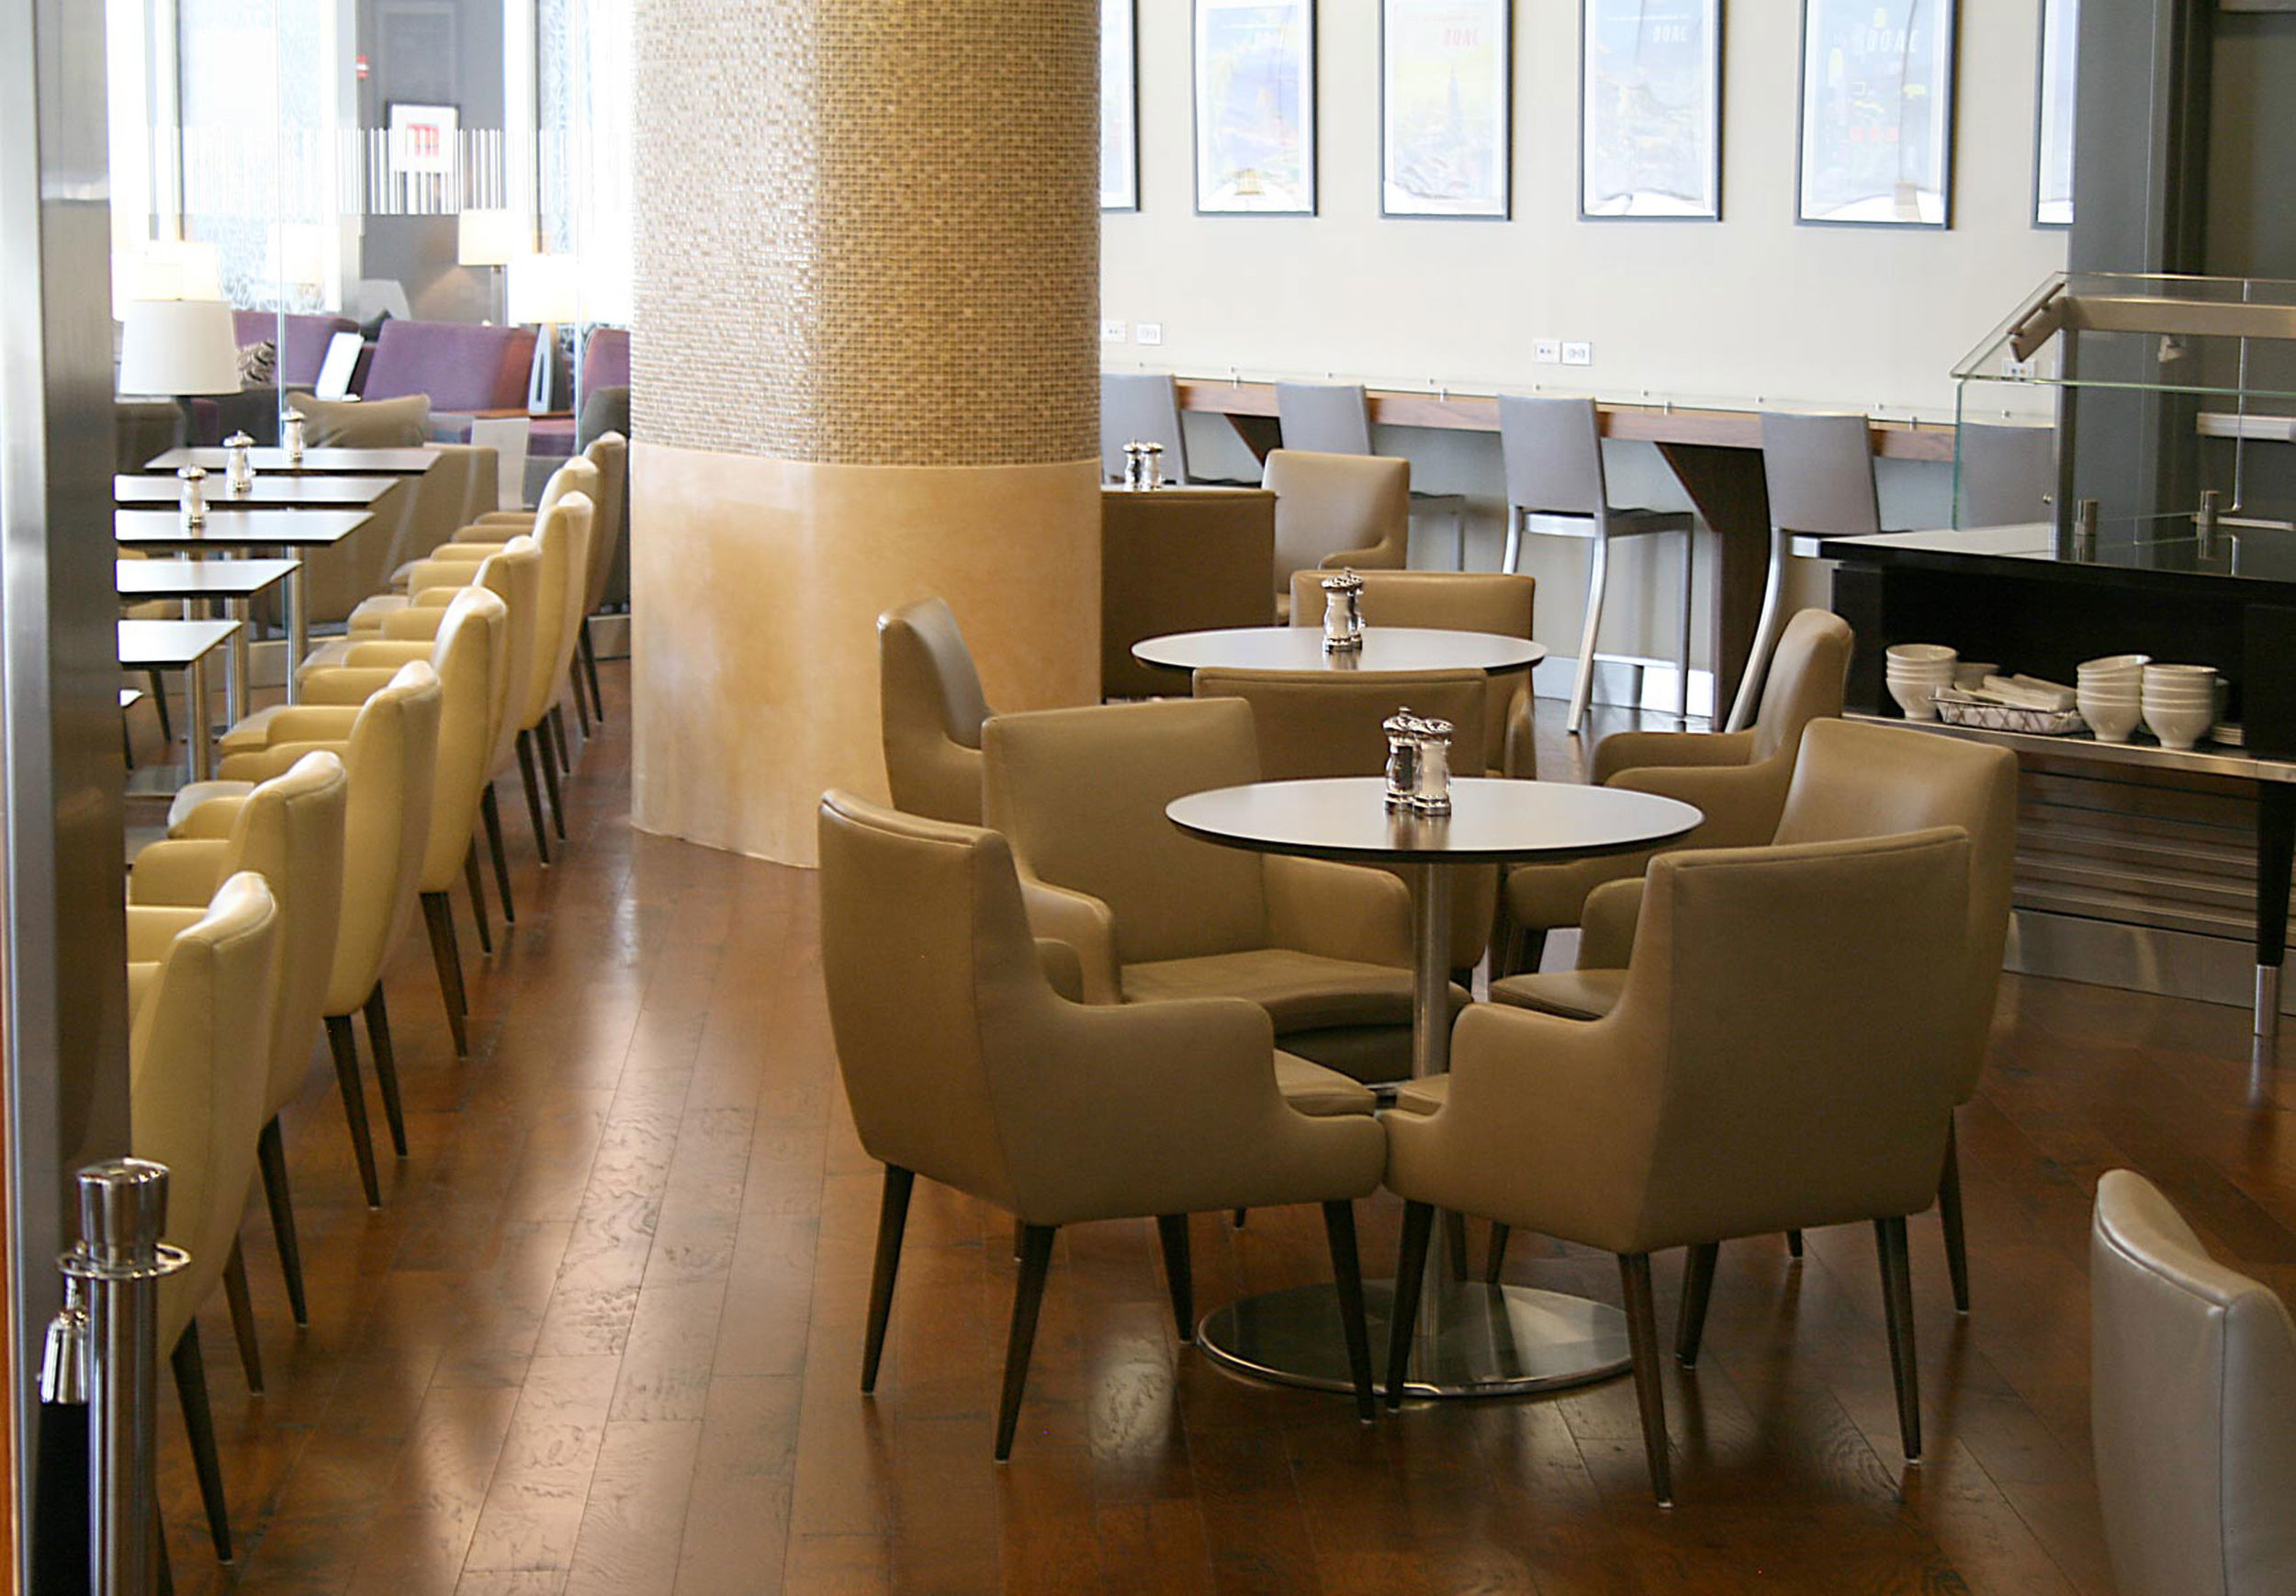 Furniture and Millwork at British Airways First Class Lounge Newark Airport by Sentient Furniture